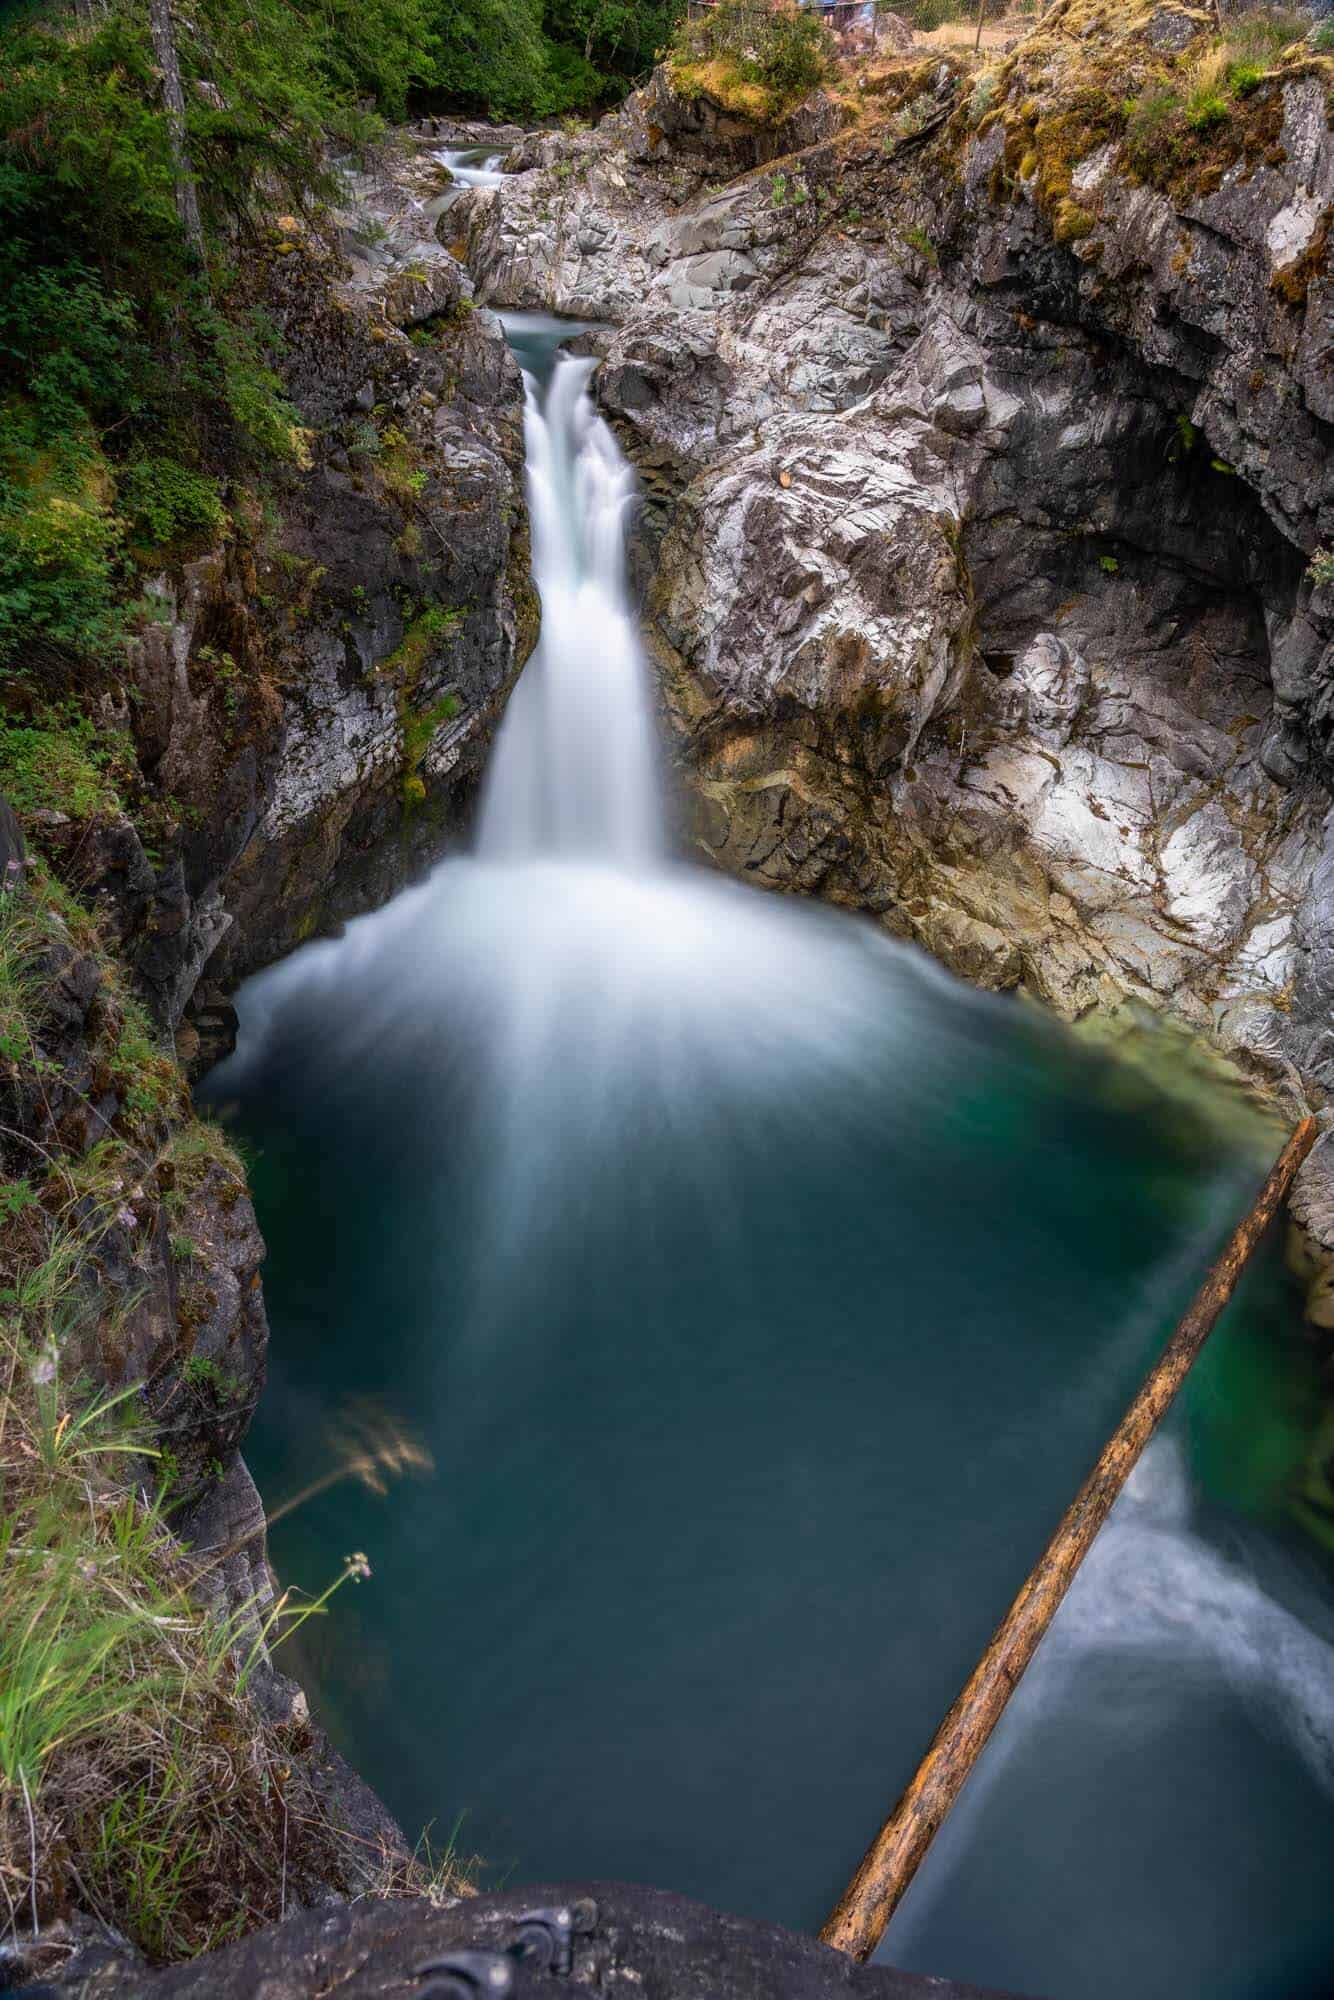 Another view of Qualicum Falls